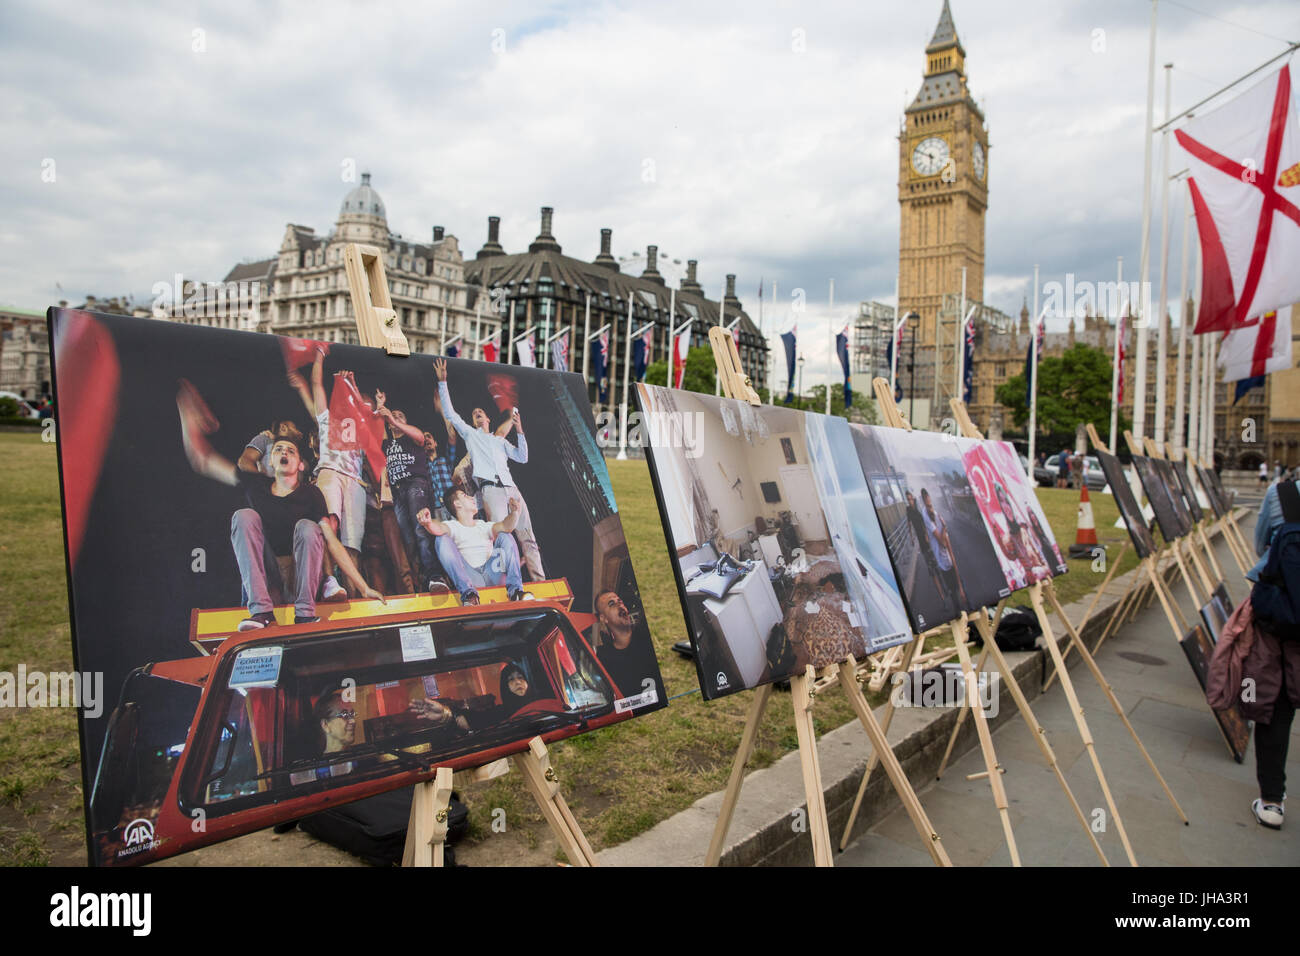 D Exhibition In London : London uk. 13th july 2017. an exhibition of photography from the